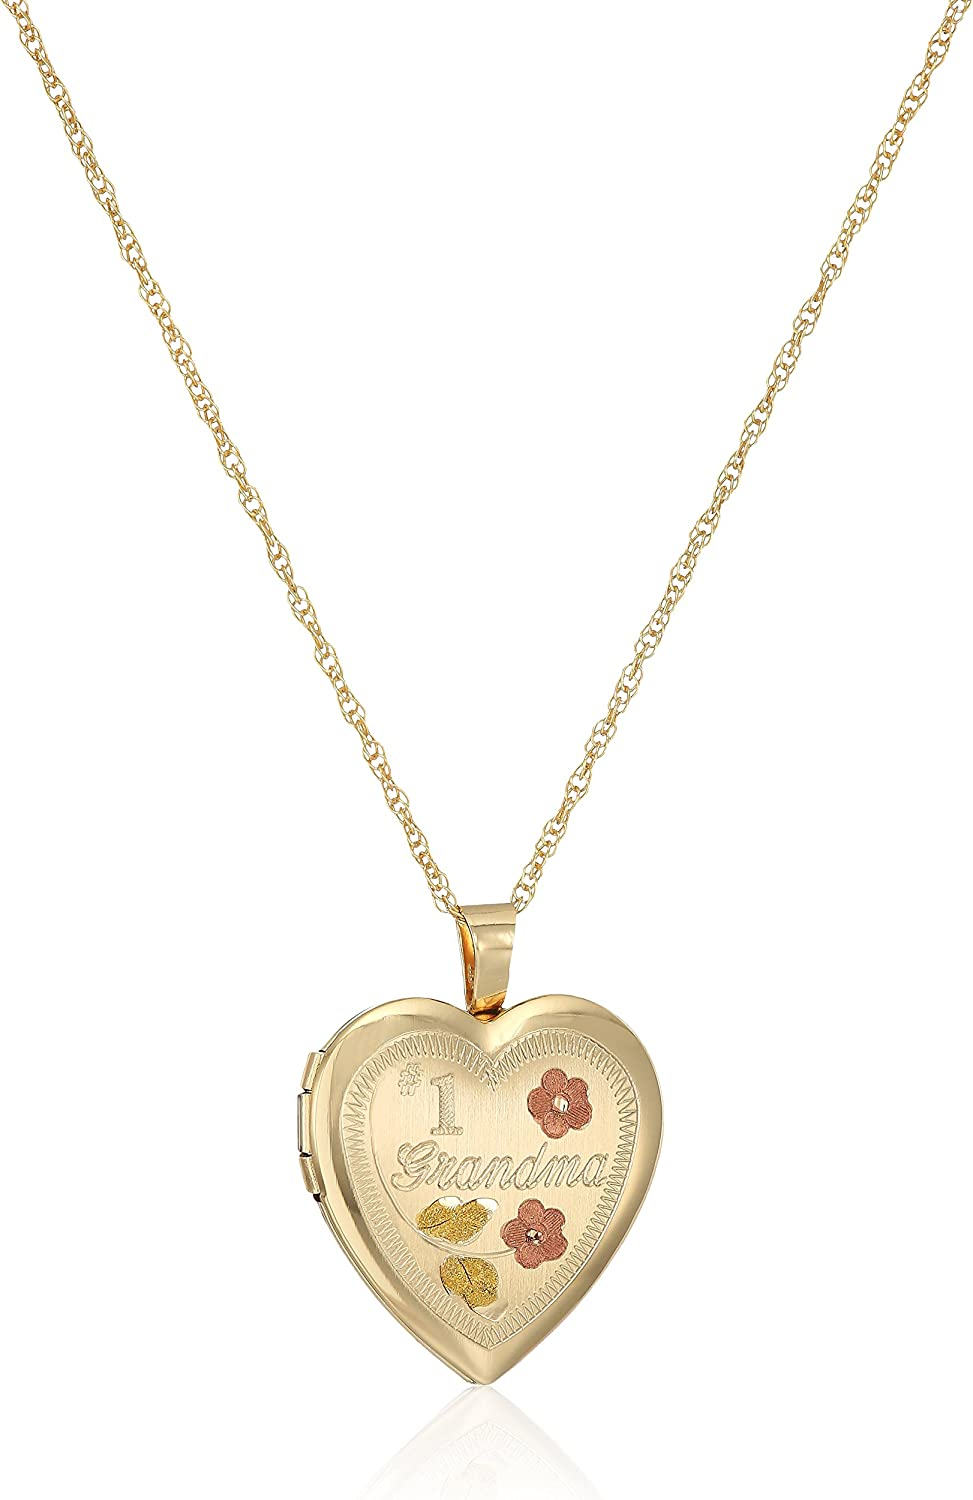 14k Gold-Filled Satin Finished Hand All items Super intense SALE free shipping Engraved Pe Heart #1 Grandma